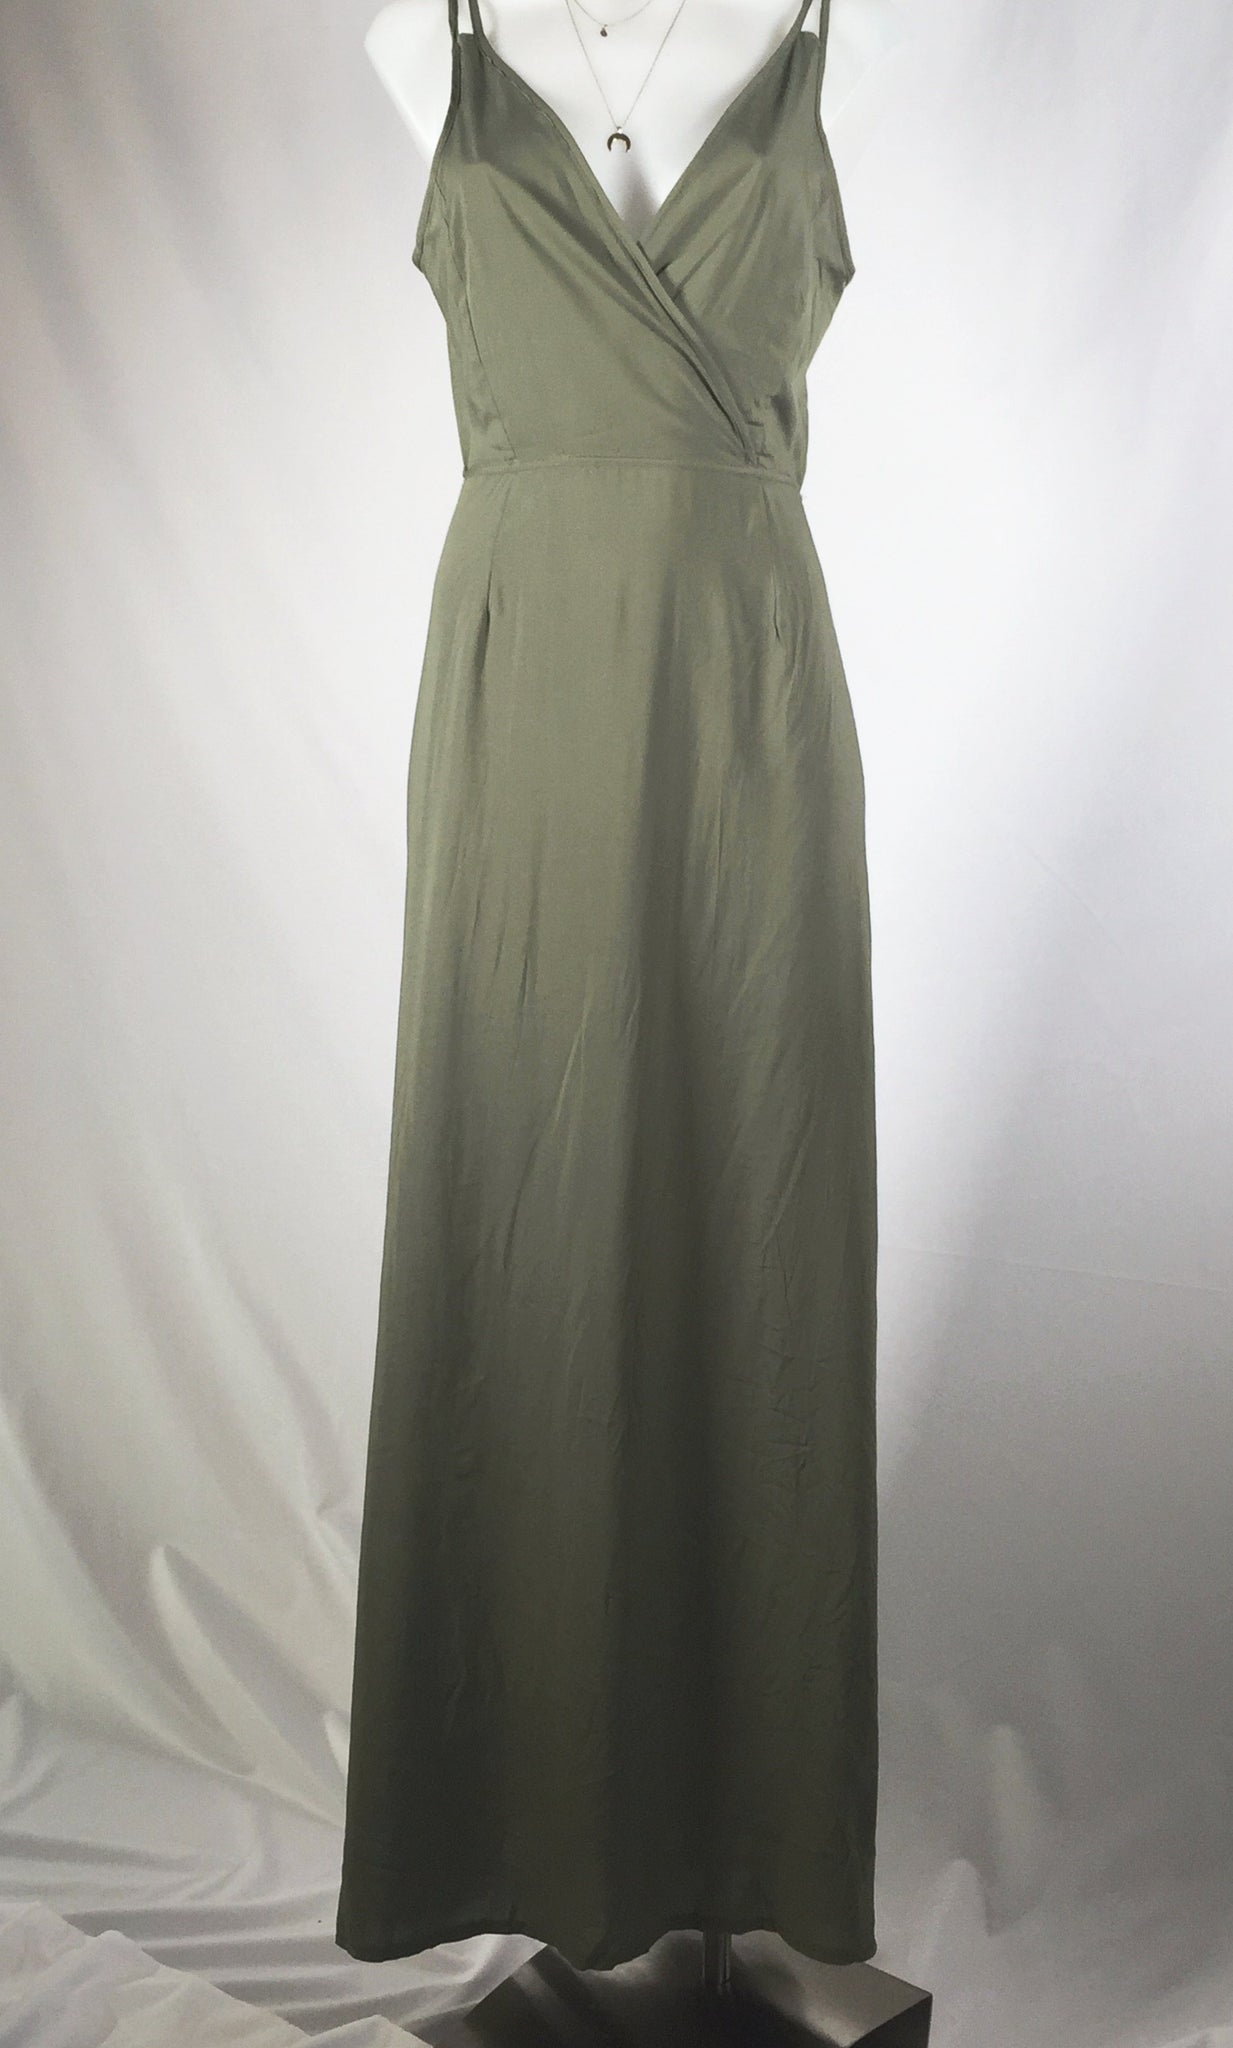 CHRISTY XOVER MAXIDRESS - KHAKI